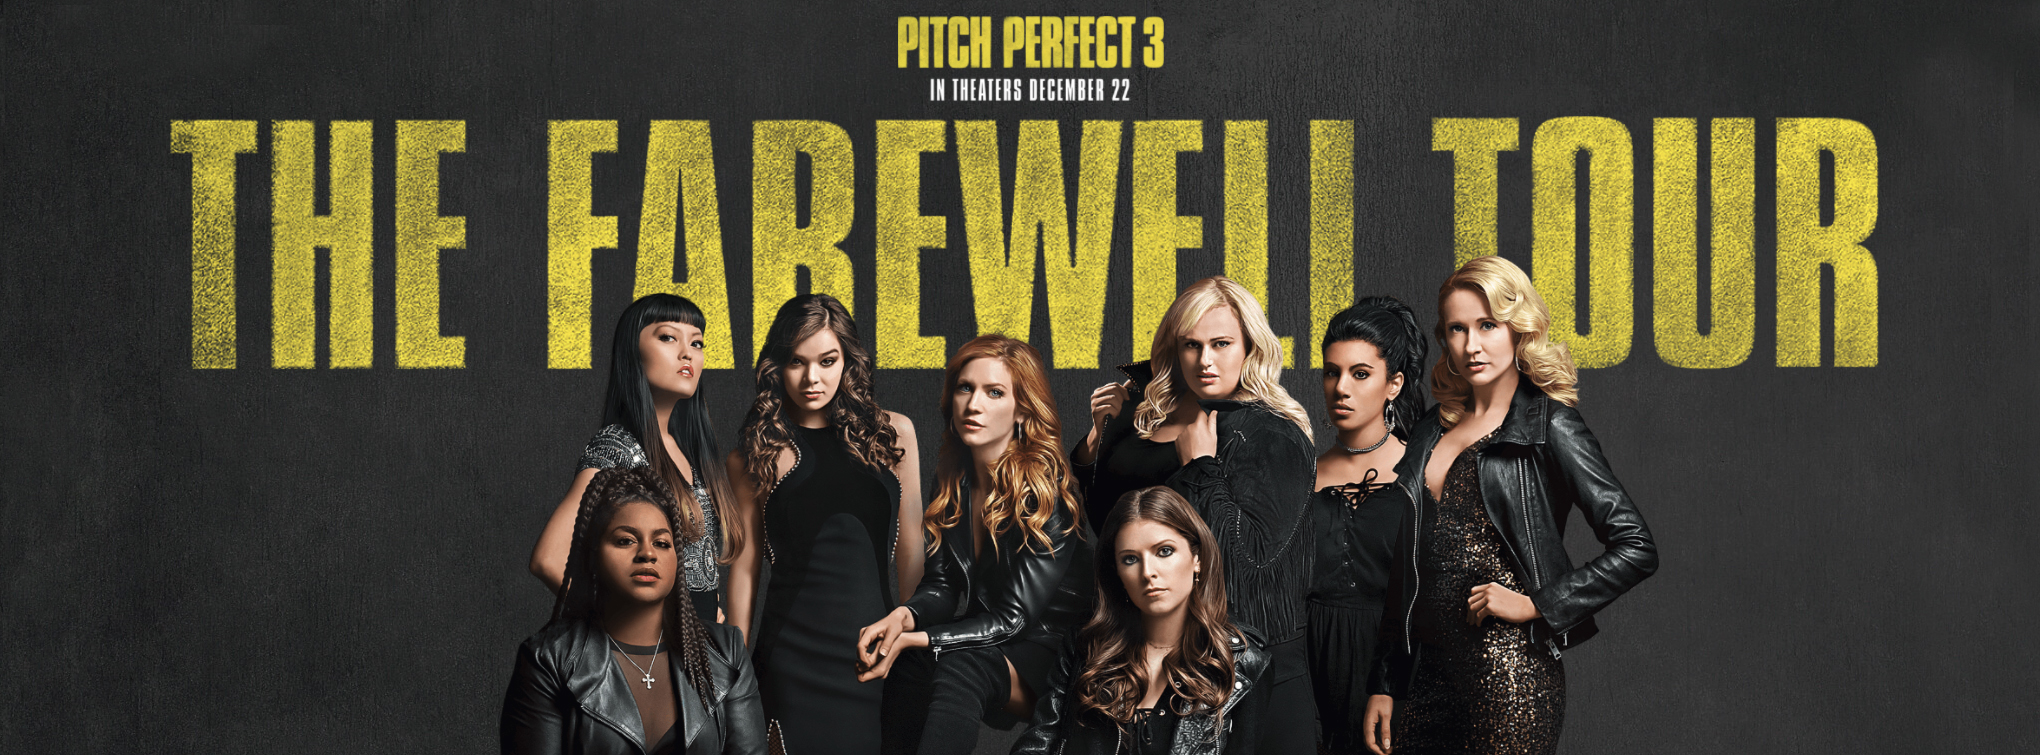 Slider image for Pitch Perfect 3